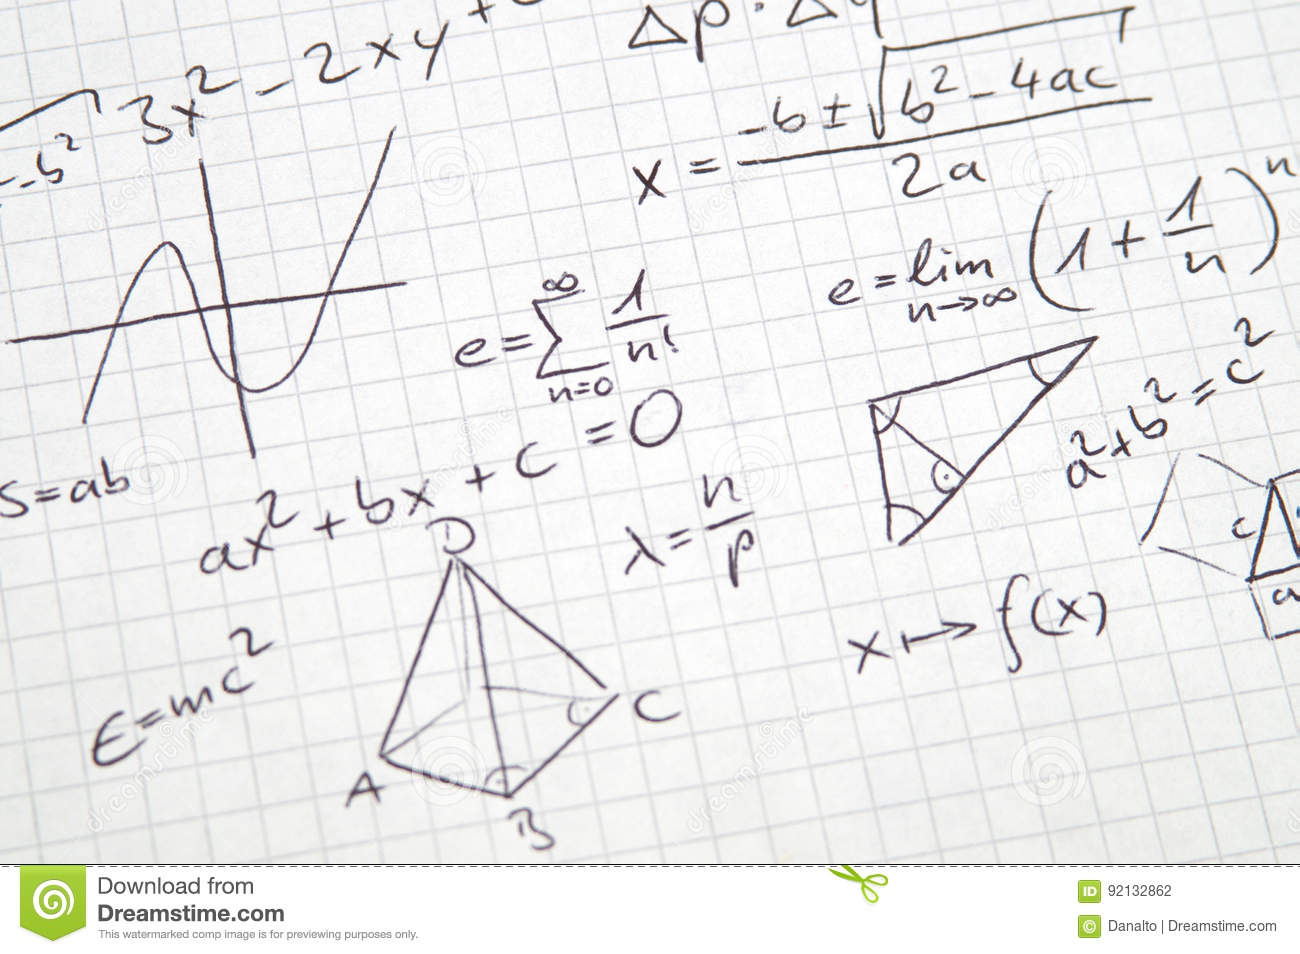 Math notes stock photo  Image of down, phrase, lettering